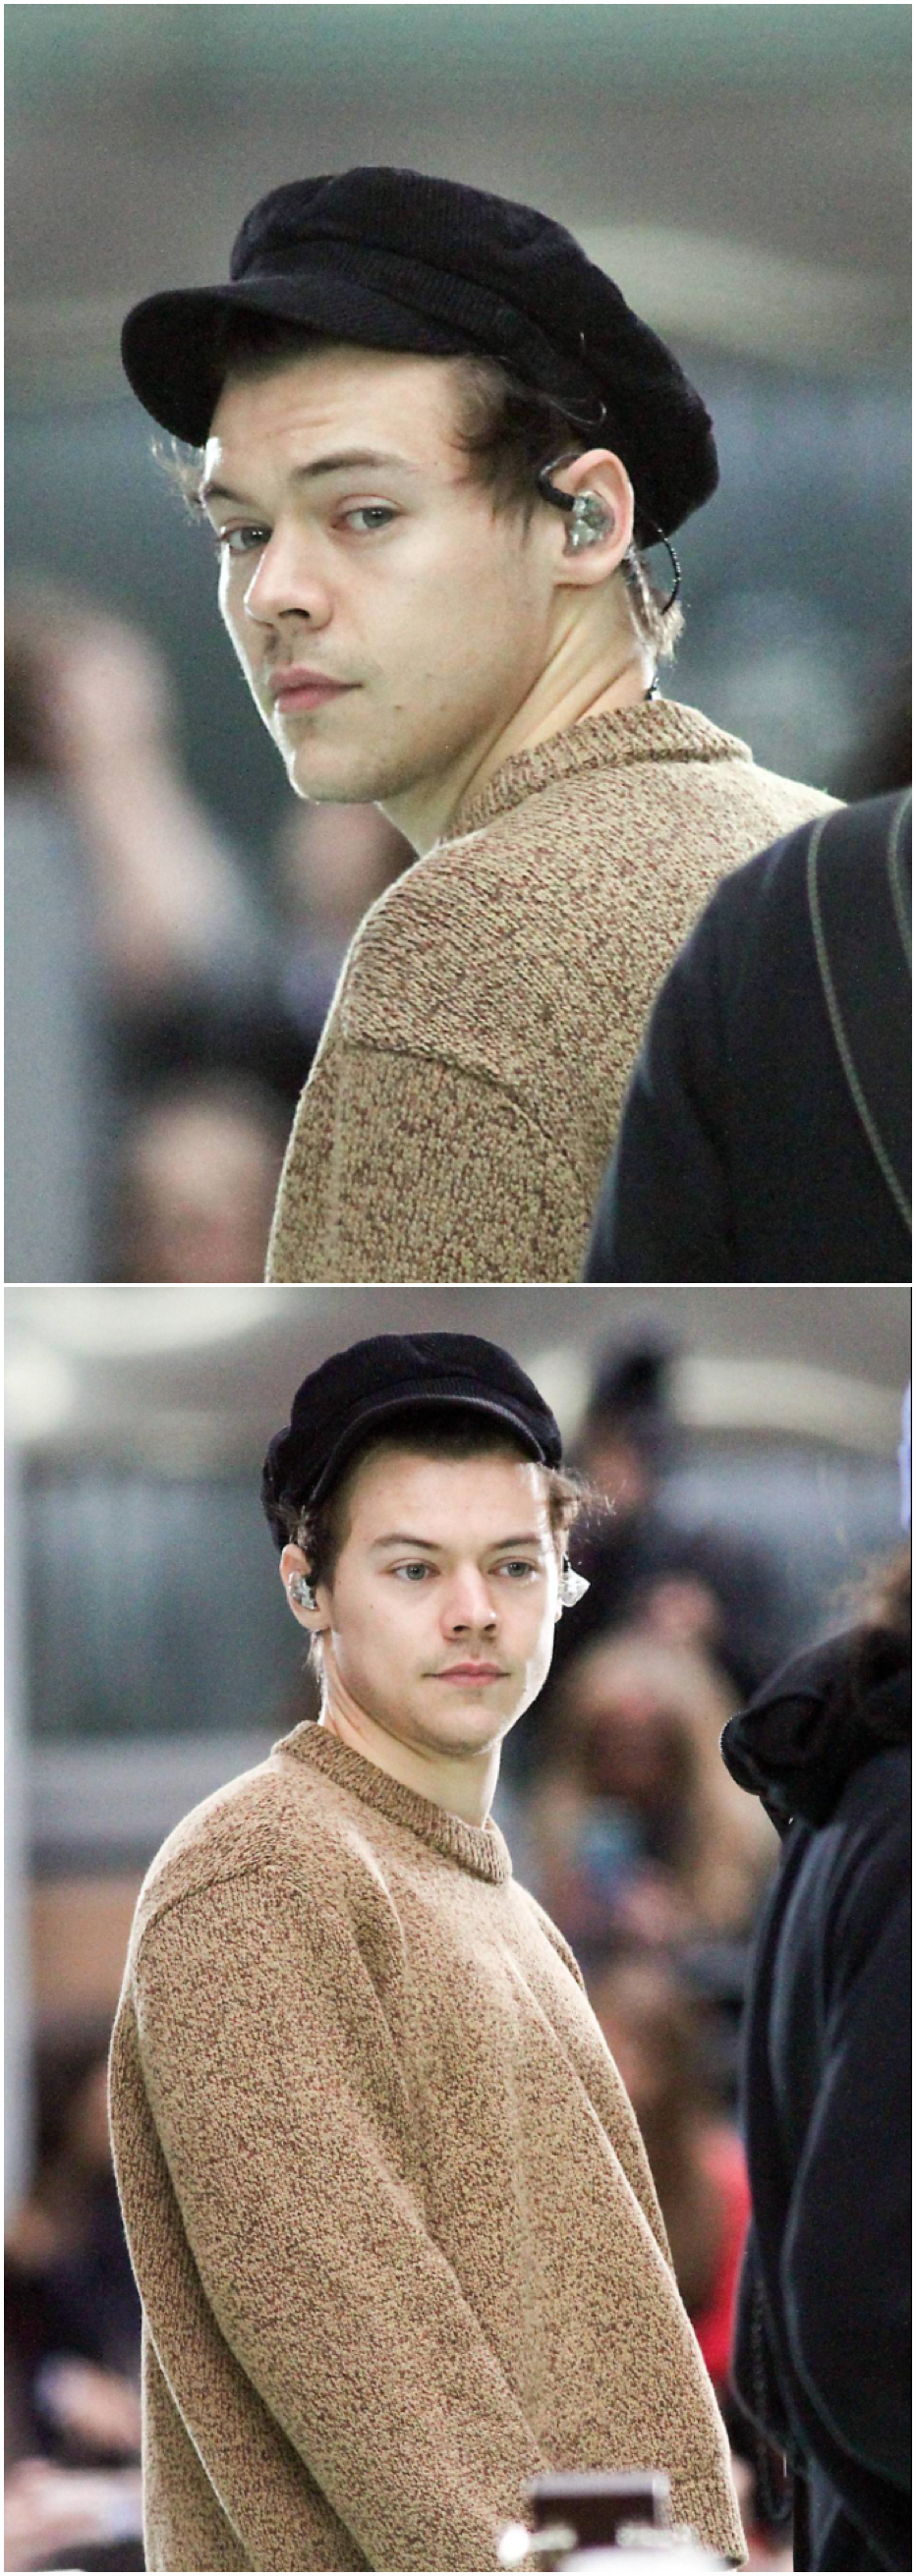 NEW   Two beautiful candid shots of Harry at the Today Show Sound Check. Follow rickysturn/harry-styles